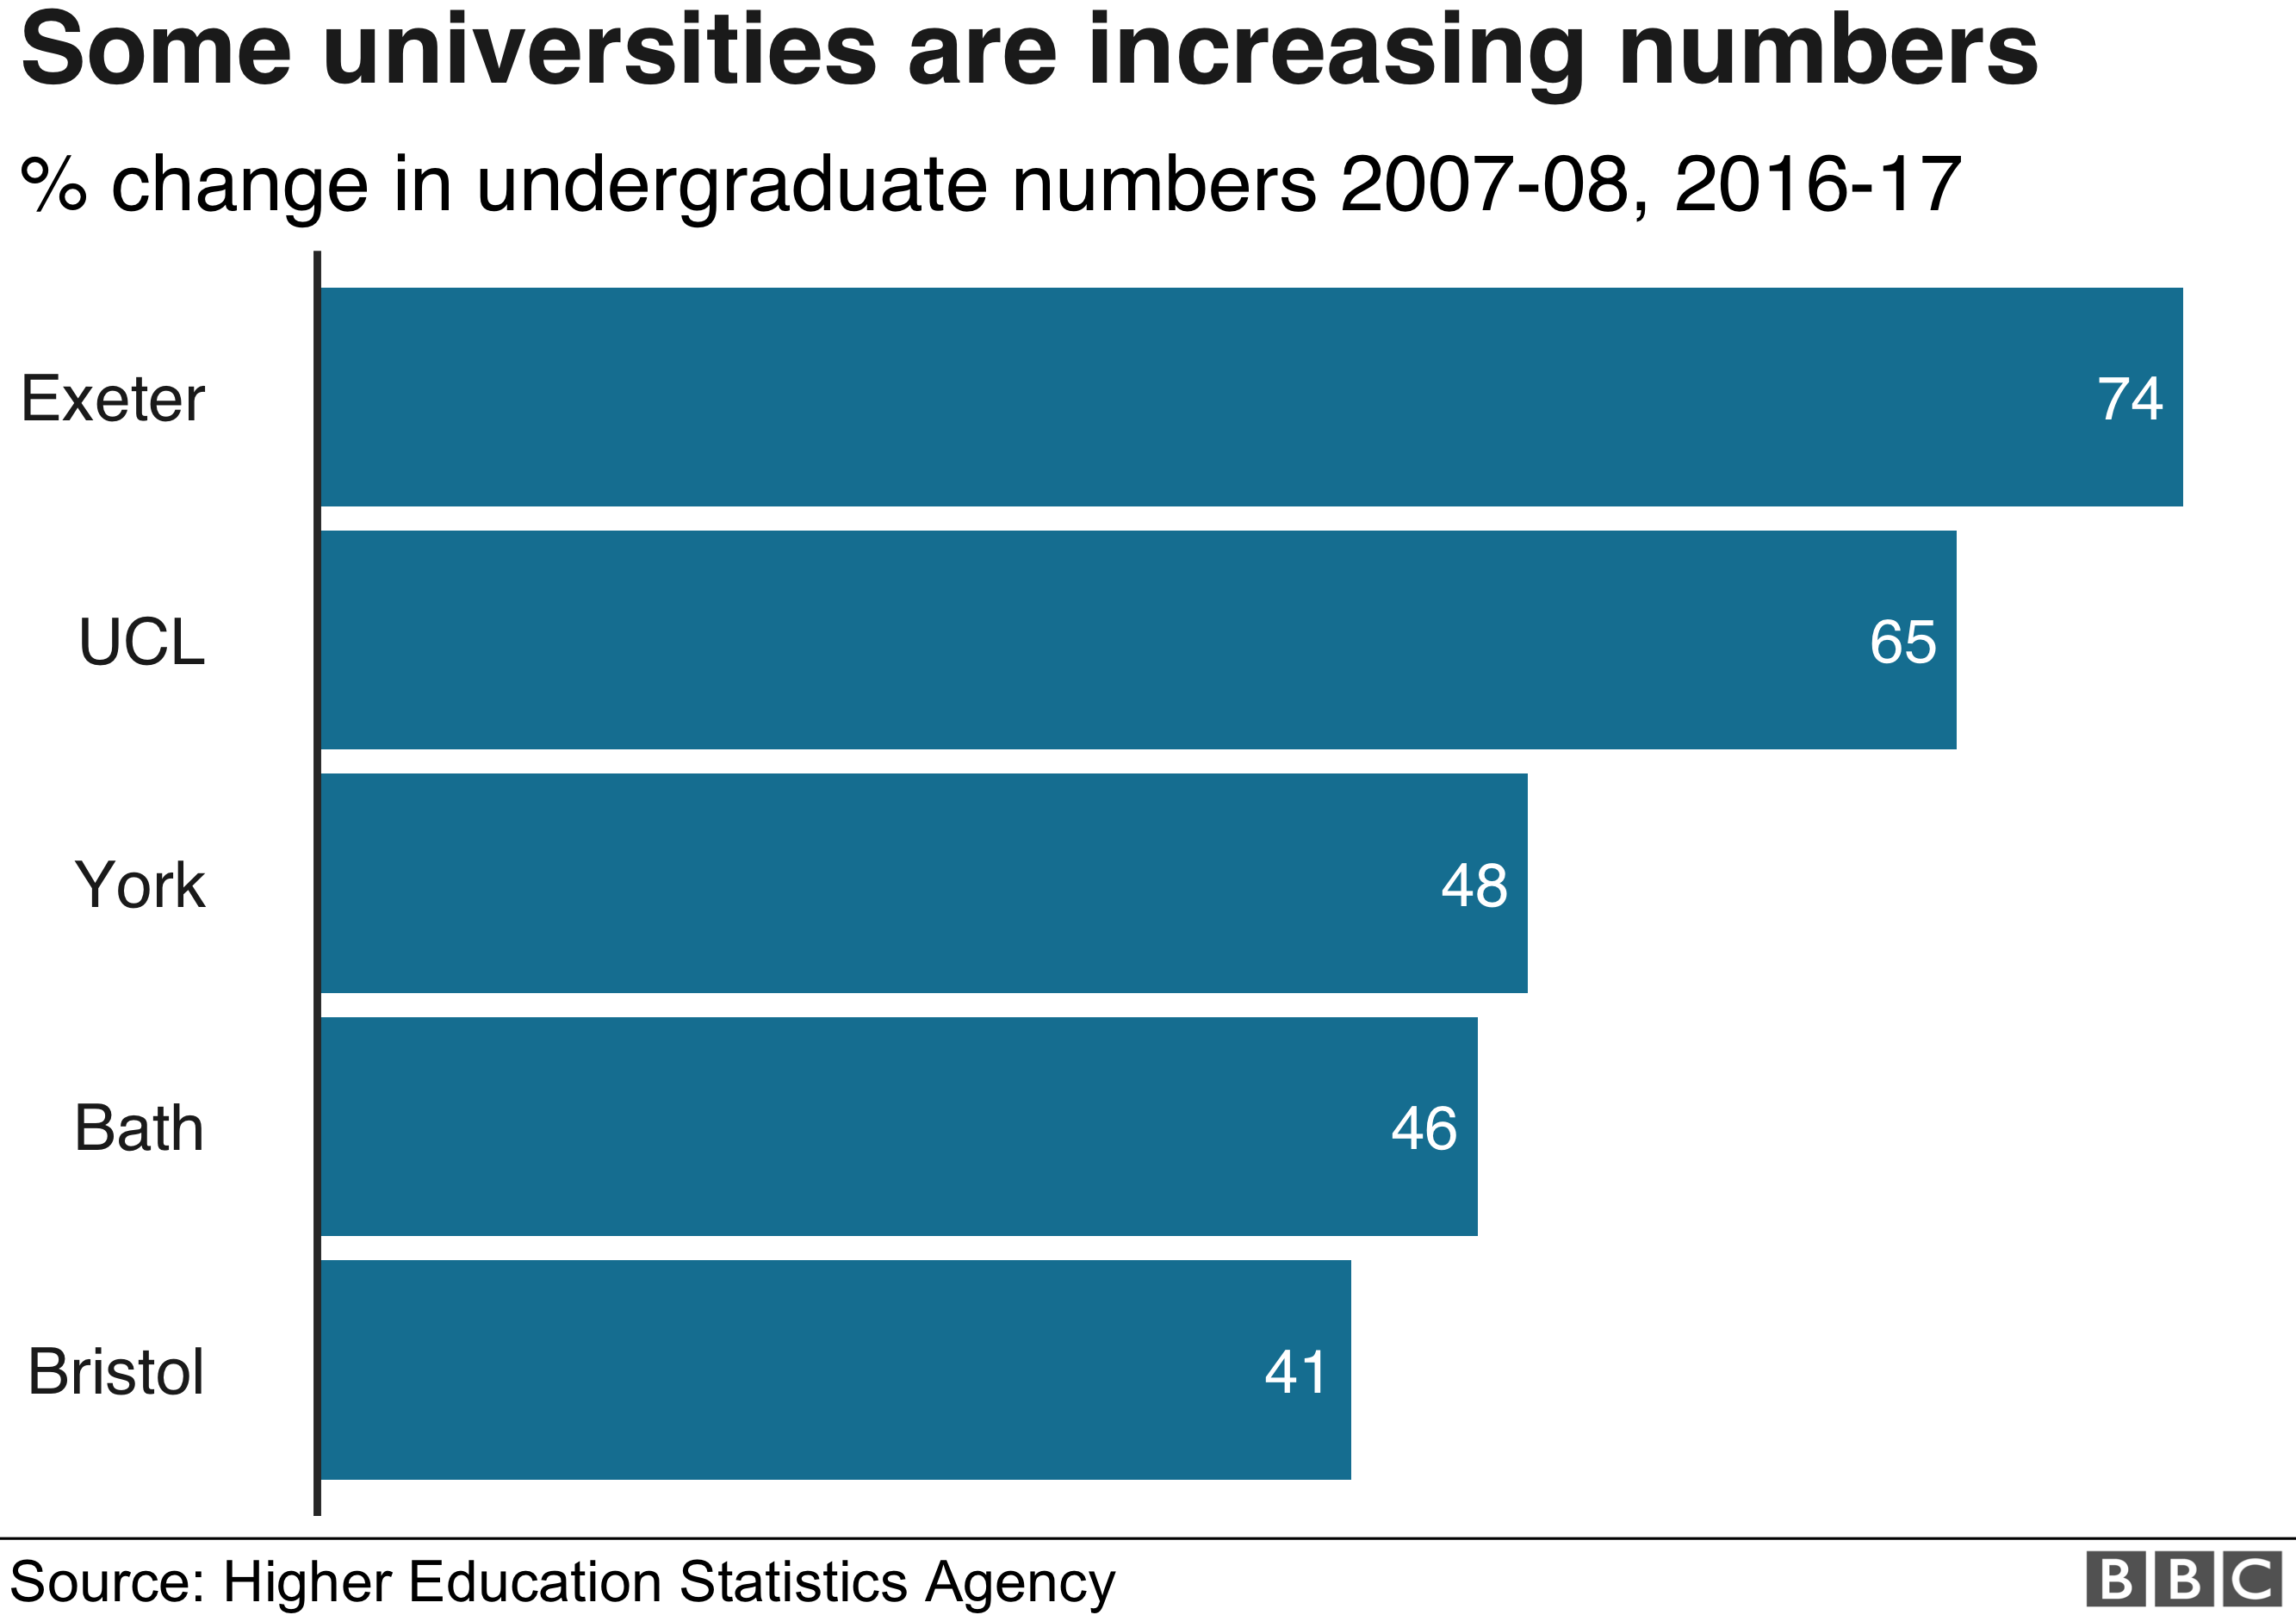 Exeter, UCL York Bath and Bristol have are the five universities that have seen the largest increase in students between 2007-08 and 2016-17